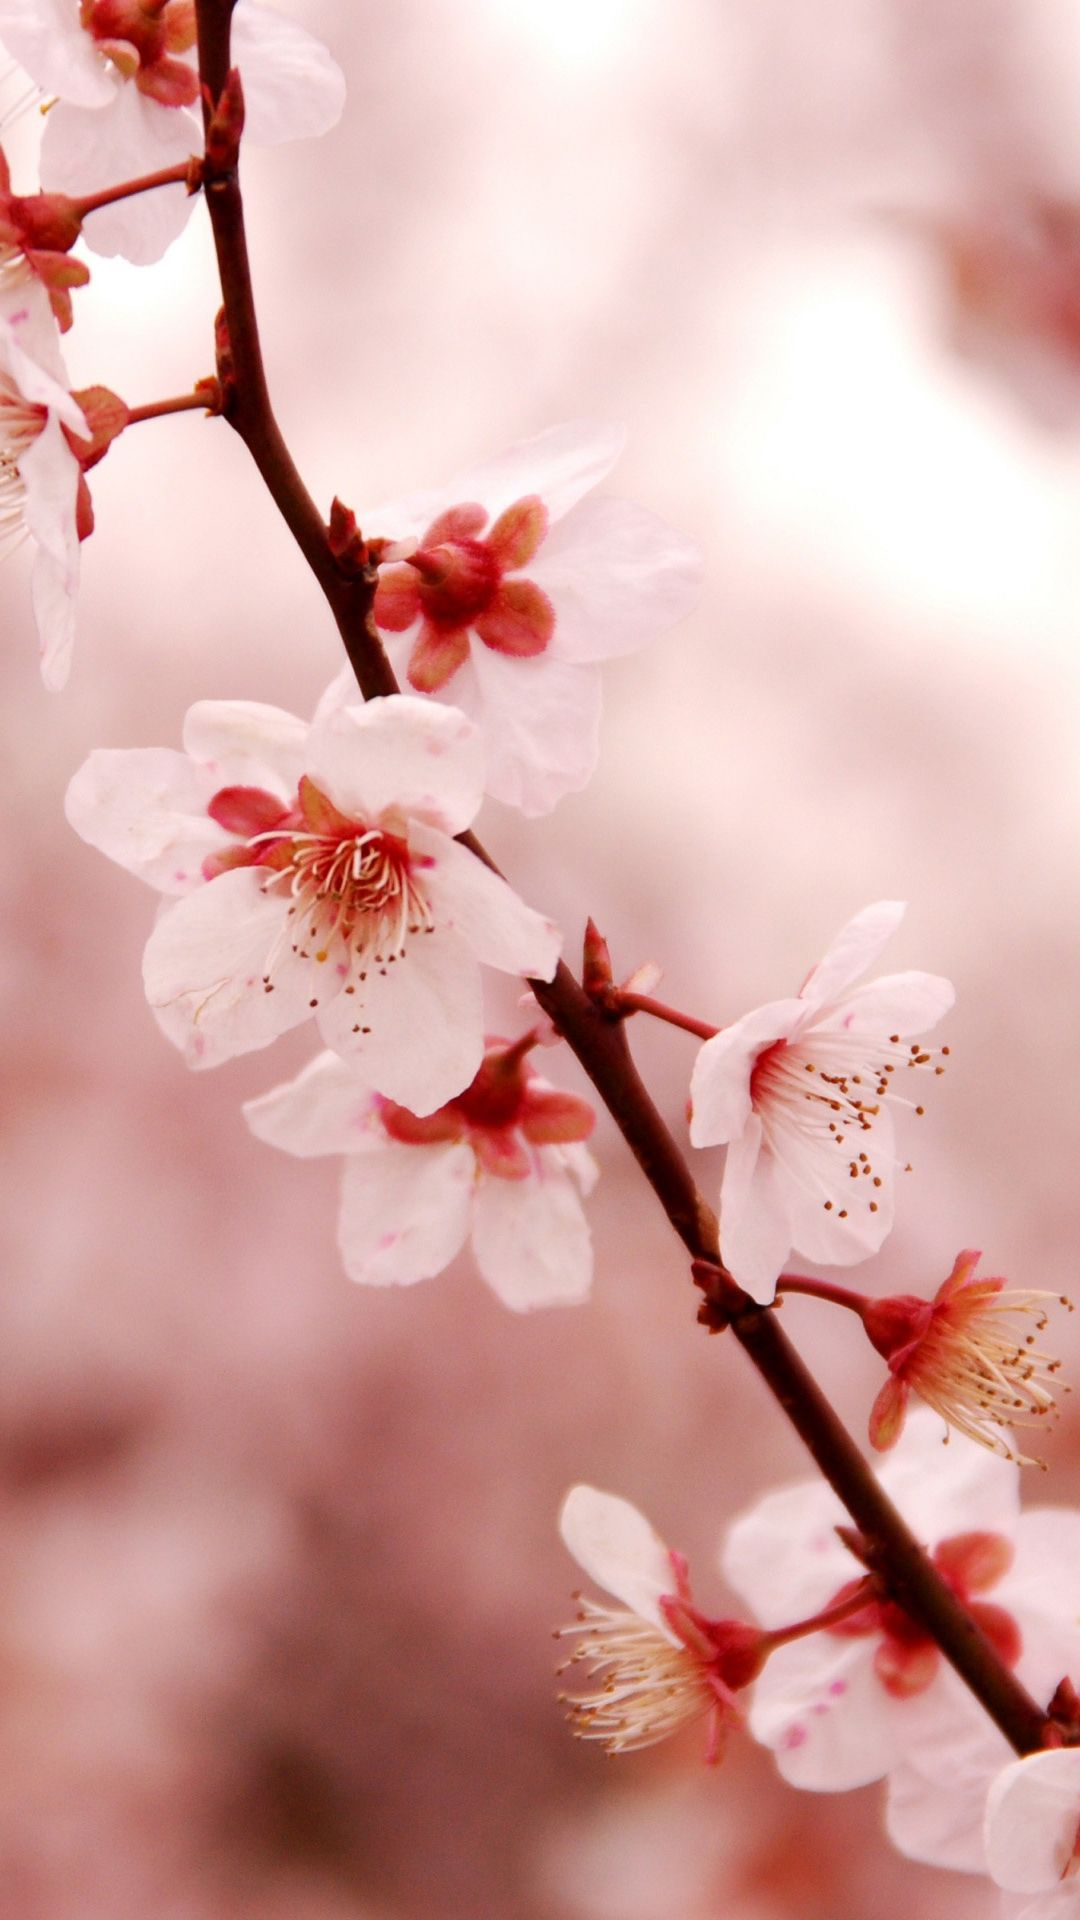 Cherry Blossom Iphone Wallpaper Download Free Cherry Blossom Wallpaper Cherry Blossom Background Japanese Cherry Blossom